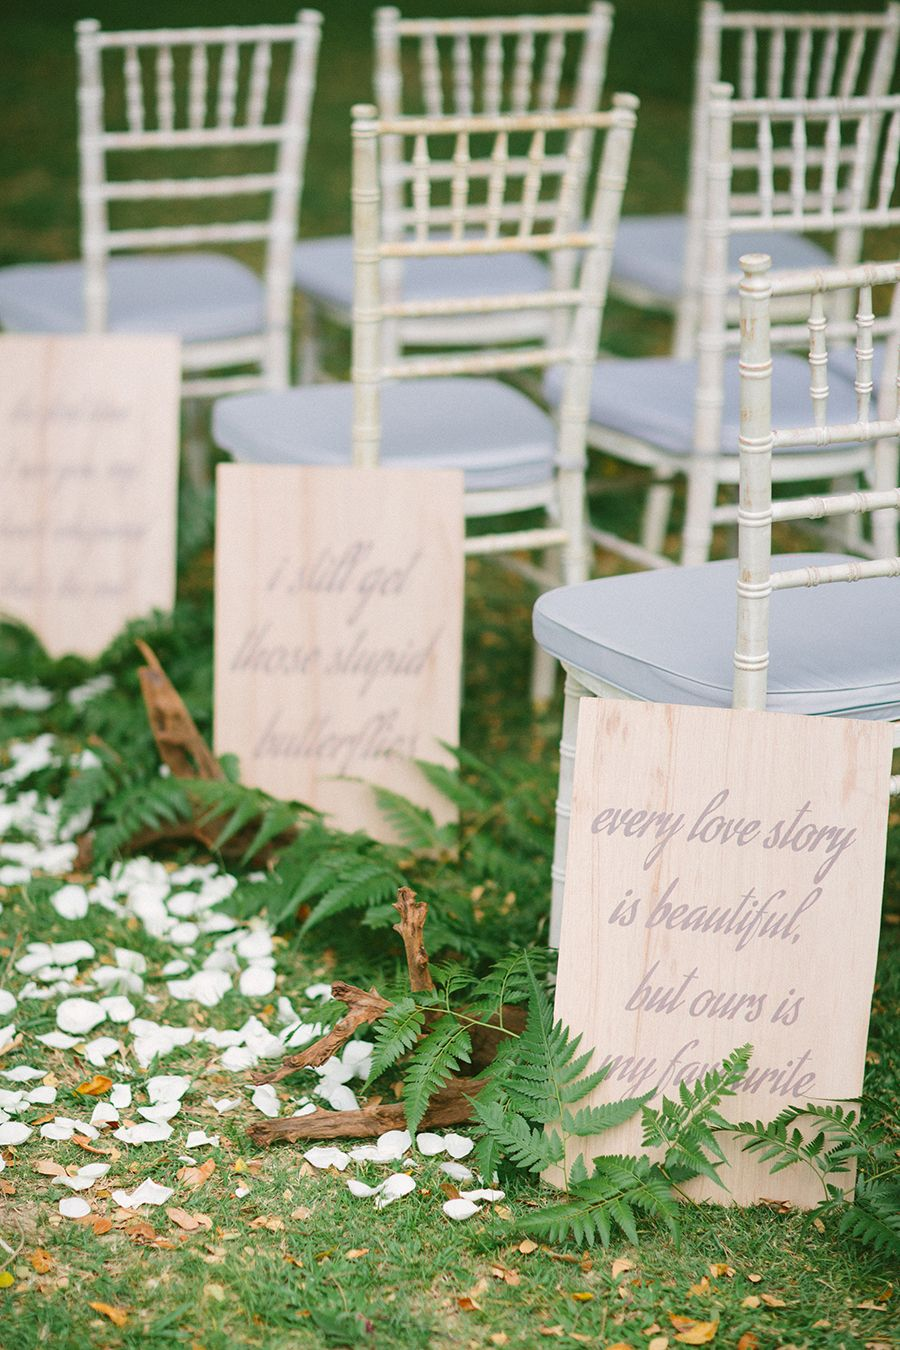 Creative wedding backdrops a styled shoot anne et mathieu by hc along the aisle short love quotes are calligraphed onto plywood and decorated with driftwood and ferns creative wedding backdrops a styled shoot junglespirit Gallery